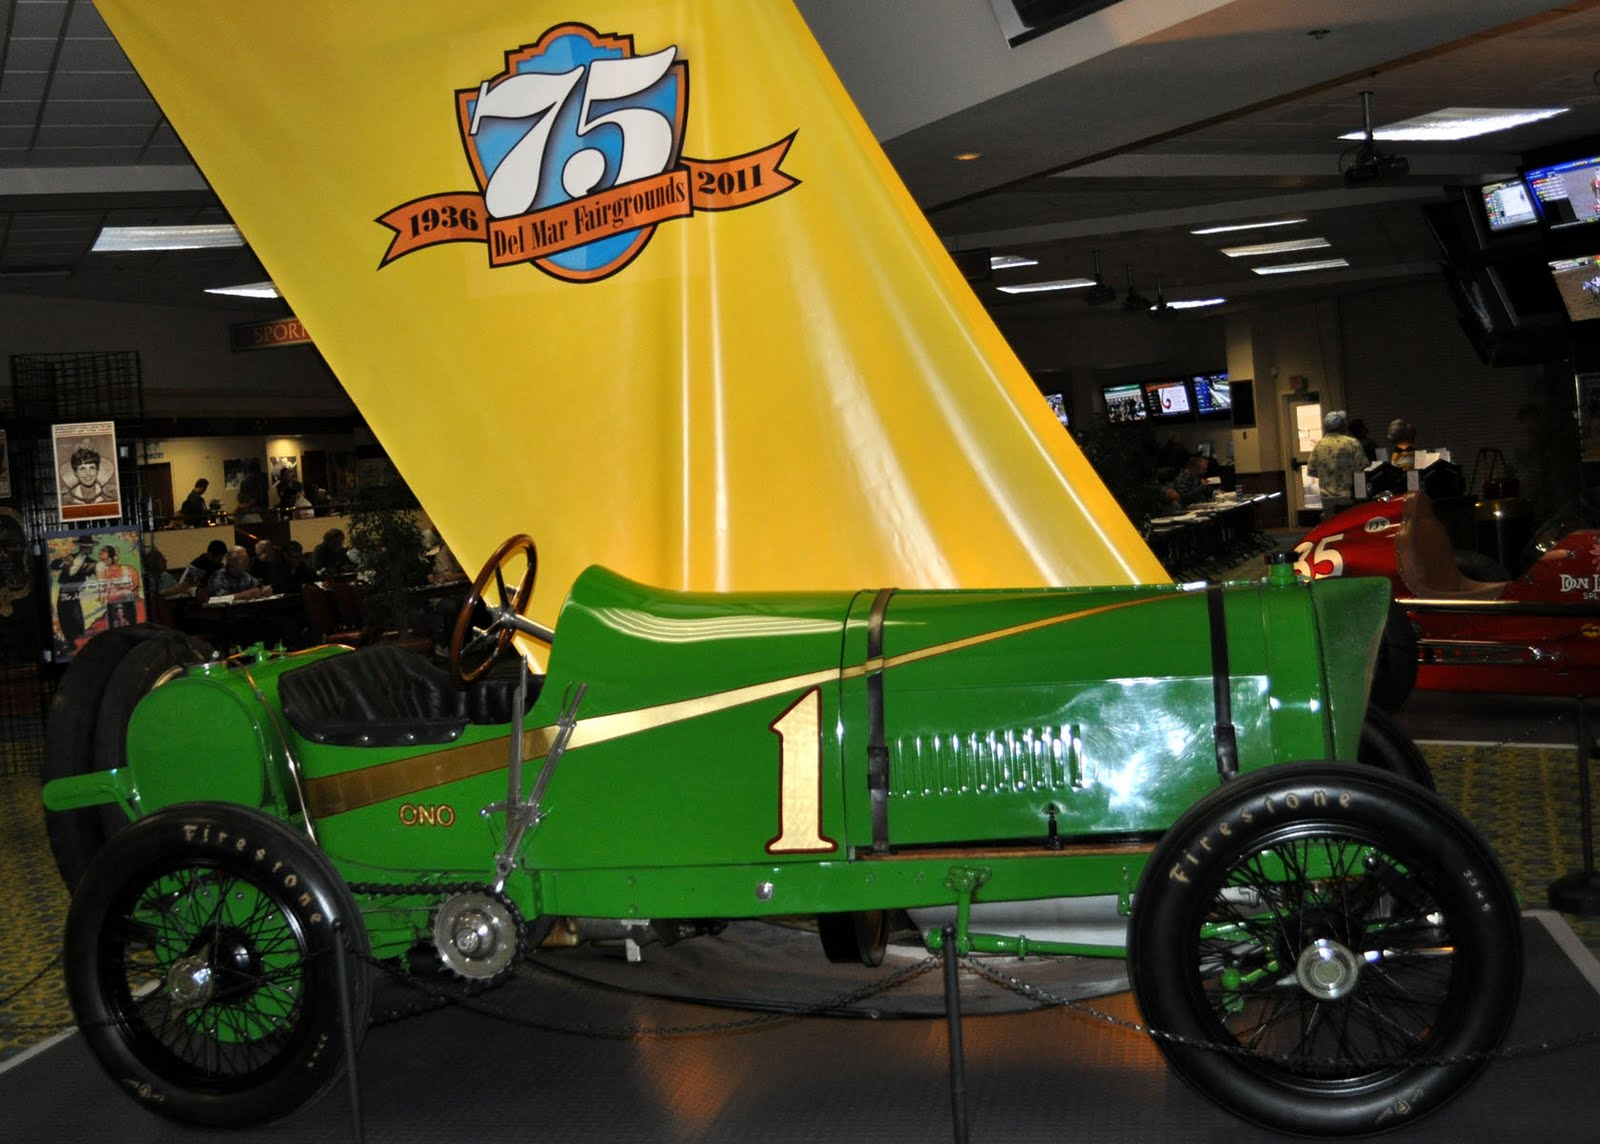 1911 Ono, A Vintage Chain Driven Race Car, And One Of Lindley Bothwellu0027s  Speed Demons